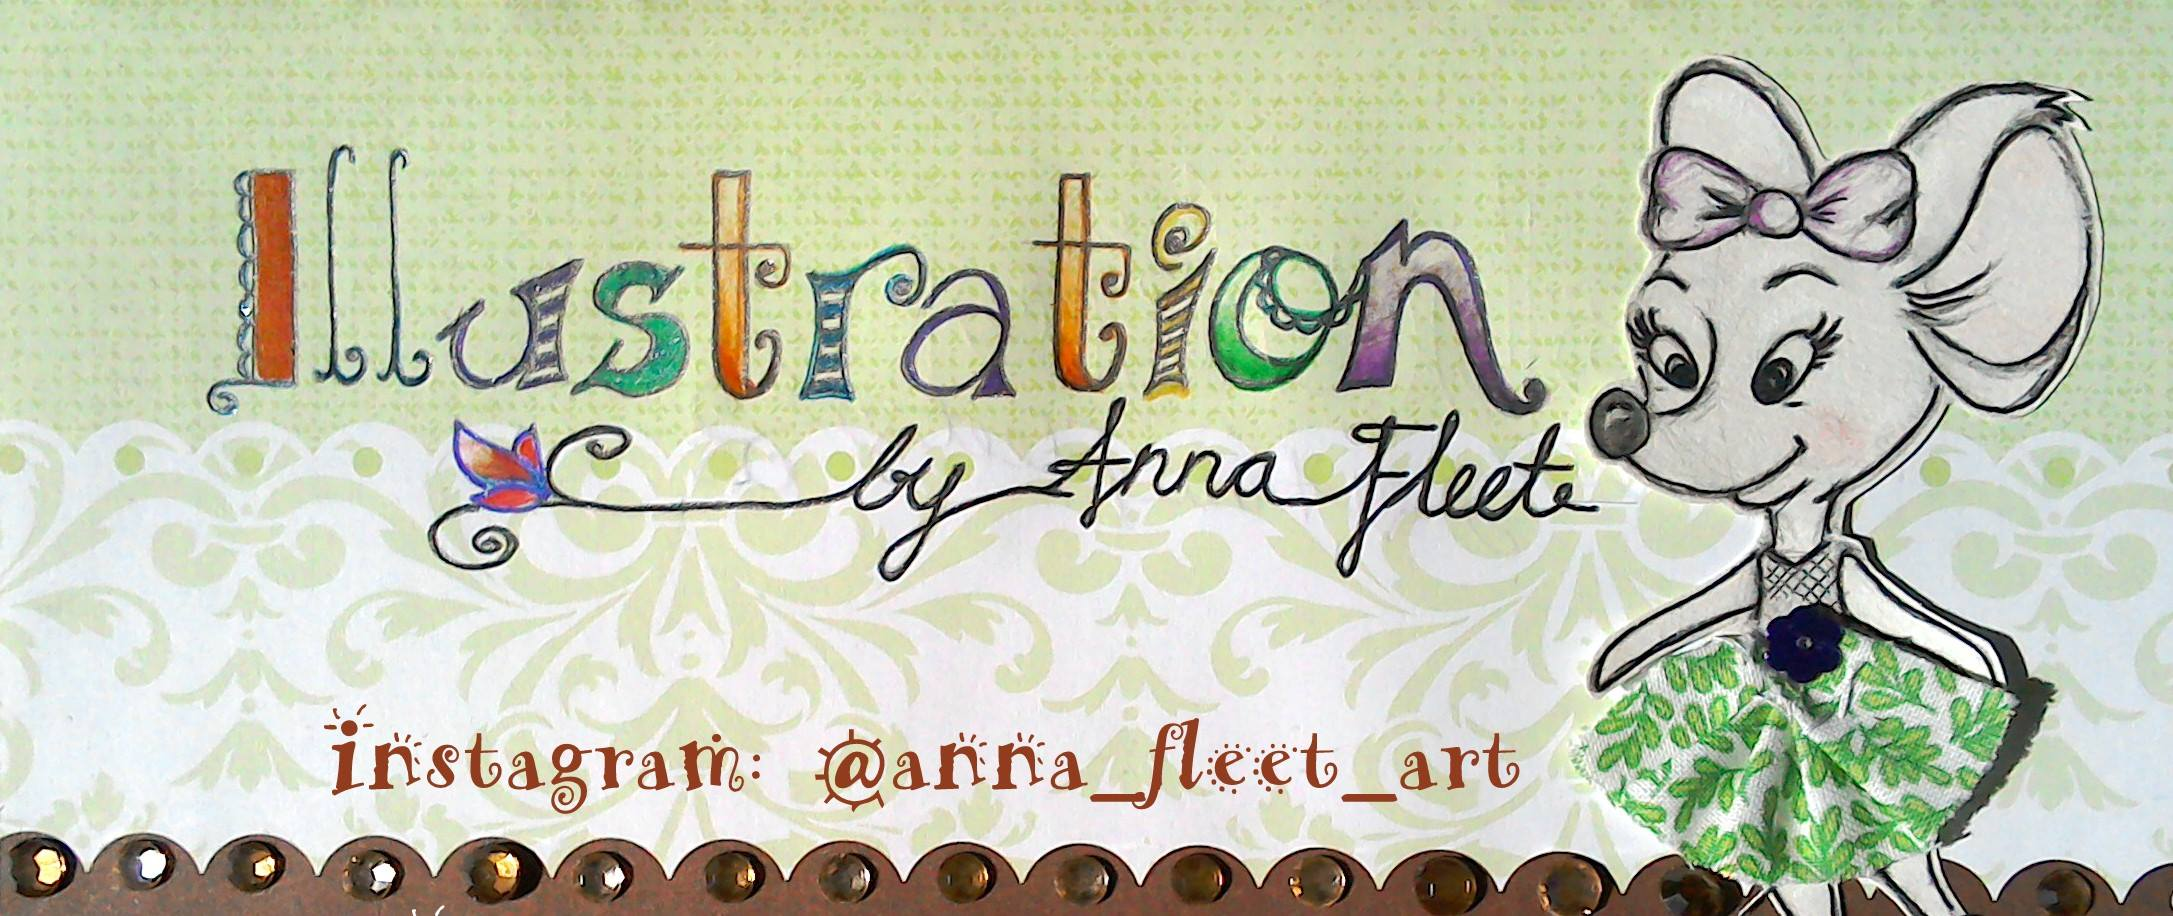 greeting cards by Illustration by Anna Fleet